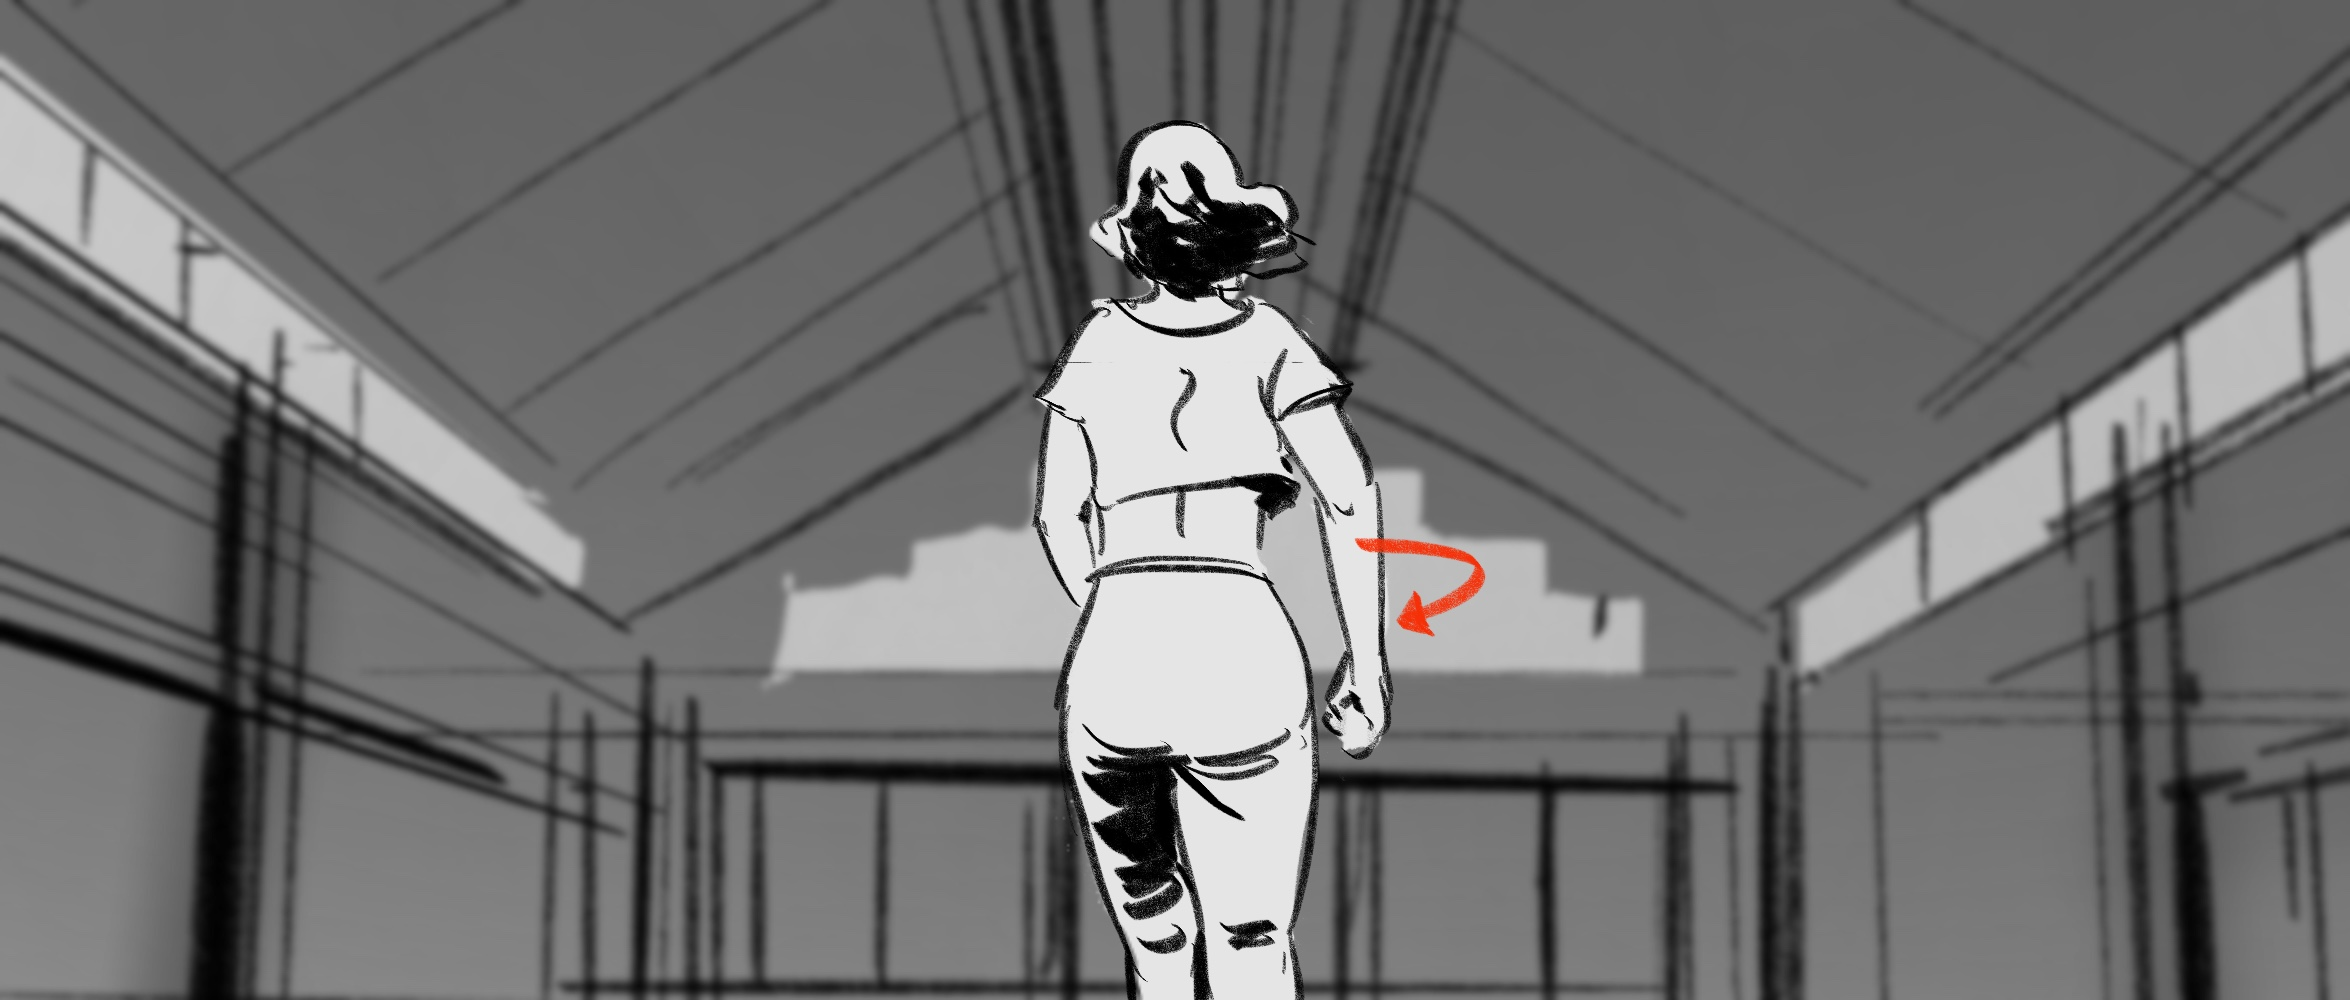 Lena_Boundaries_Storyboard_08_v02.jpg